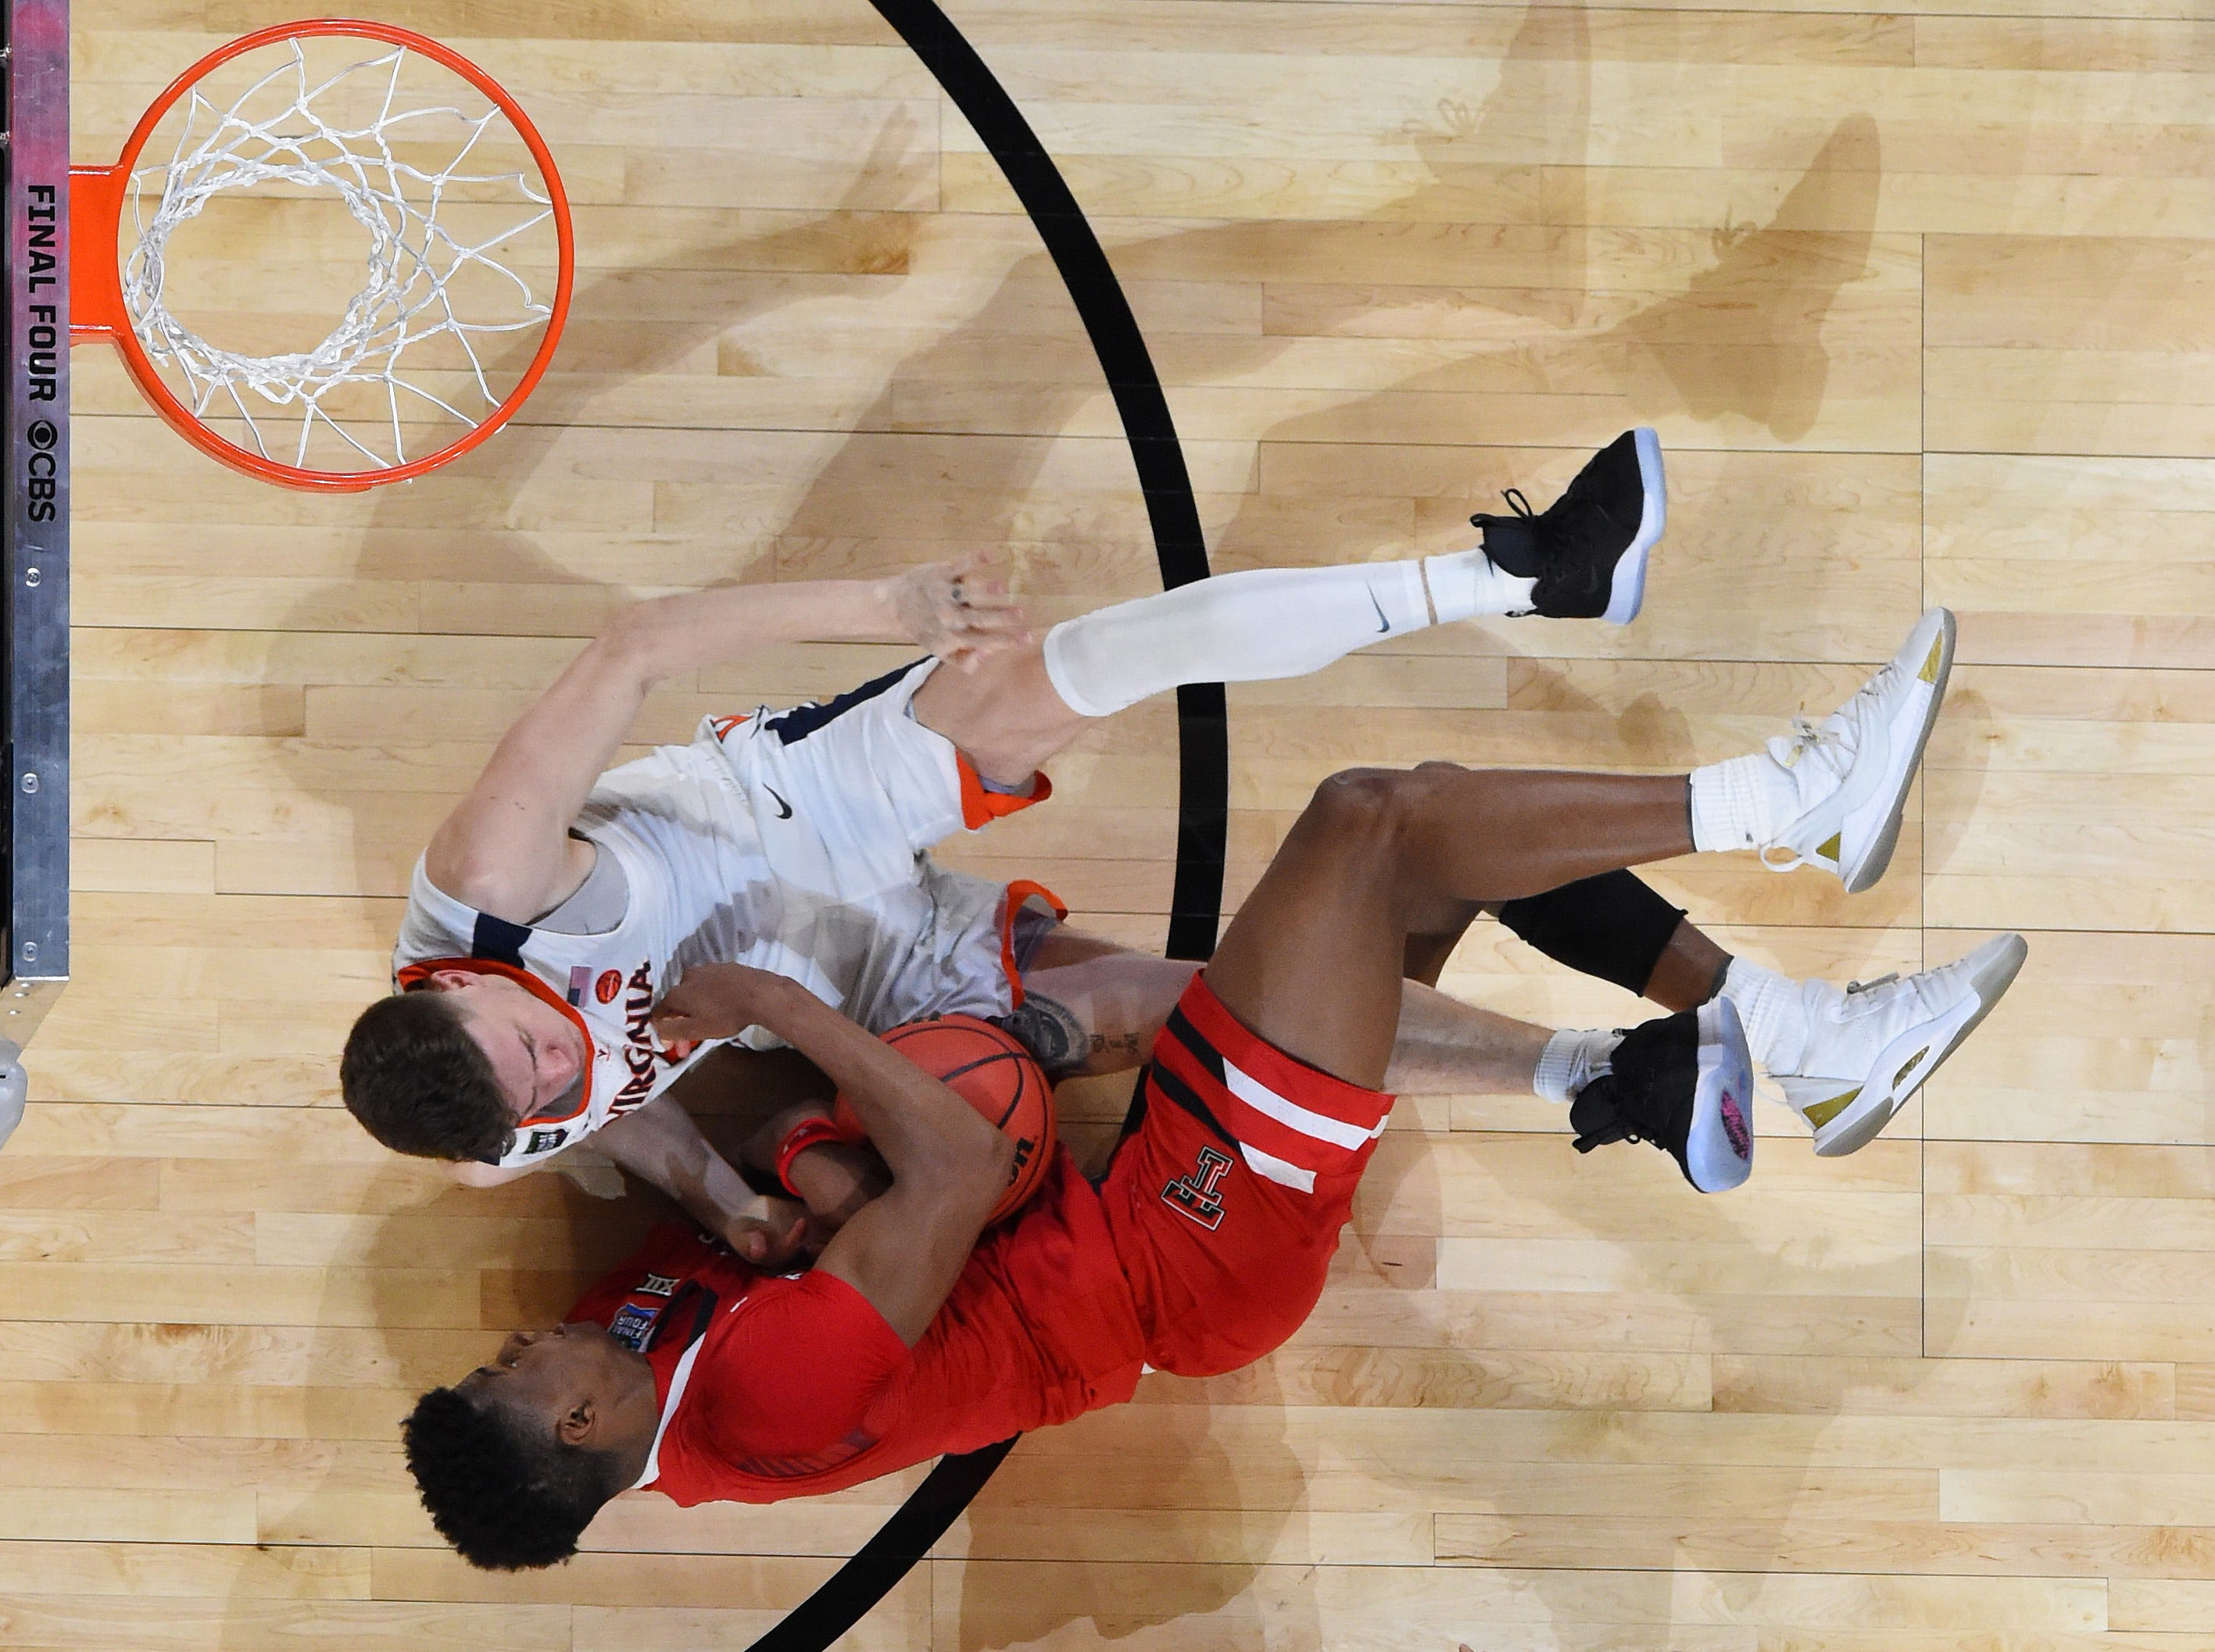 Apr 8, 2019; Minneapolis, MN, USA; Texas Tech Red Raiders guard Jarrett Culver (23) forces a jump ball with Virginia Cavaliers guard Kyle Guy (5) during the second half in the championship game of the 2019 men's Final Four at US Bank Stadium. Mandatory Credit: Bob Donnan-USA TODAY Sports